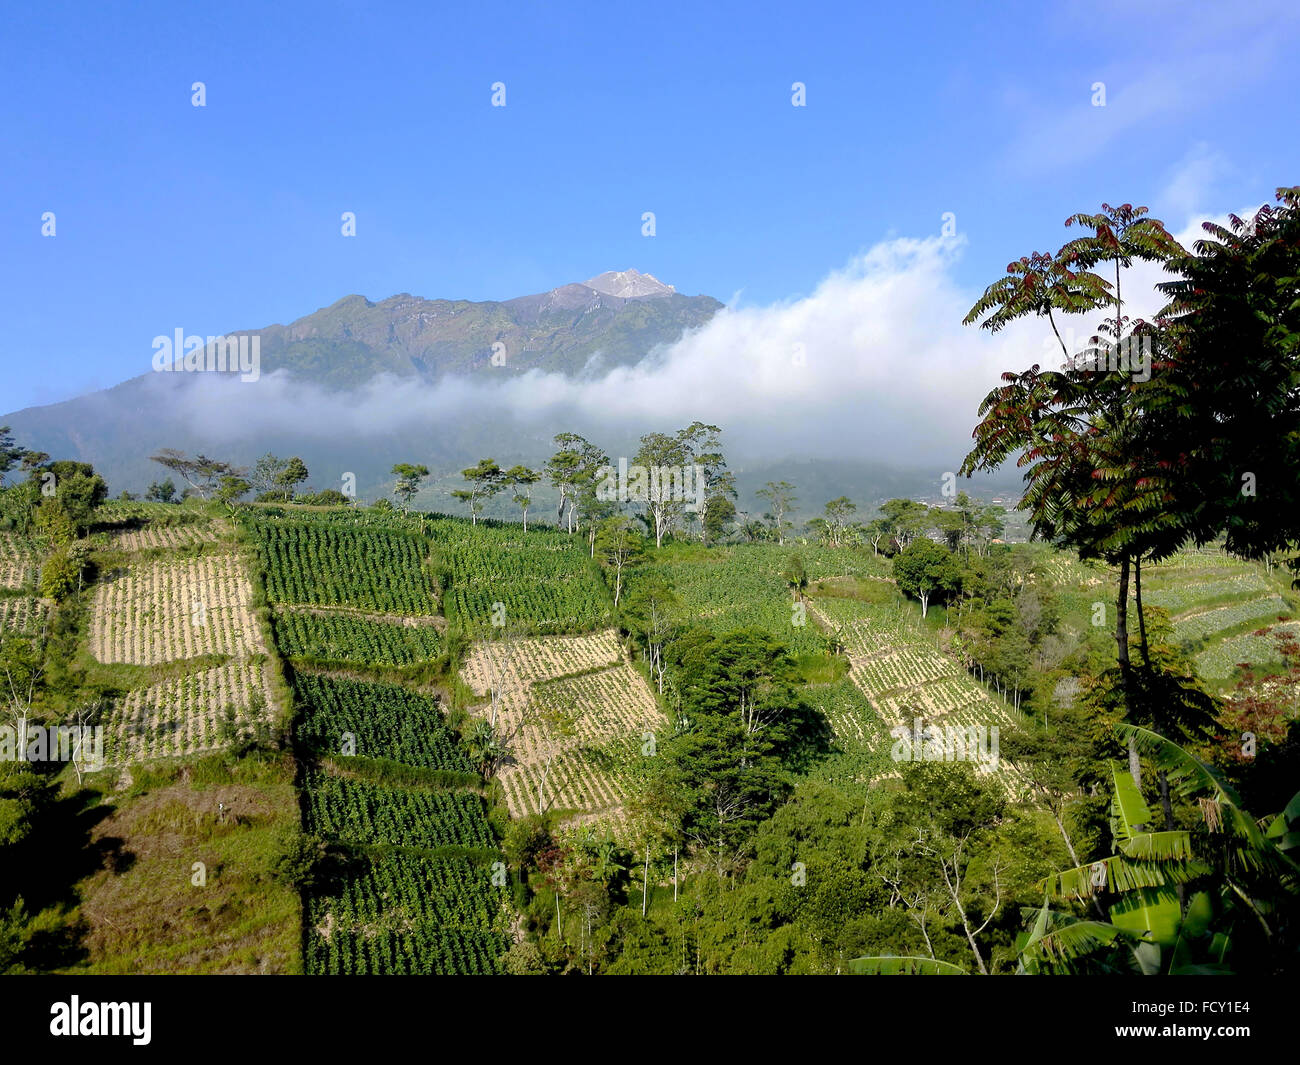 Indonesia Central Java Mount Merapi seen from the Ketep Pass  Adrian Baker - Stock Image